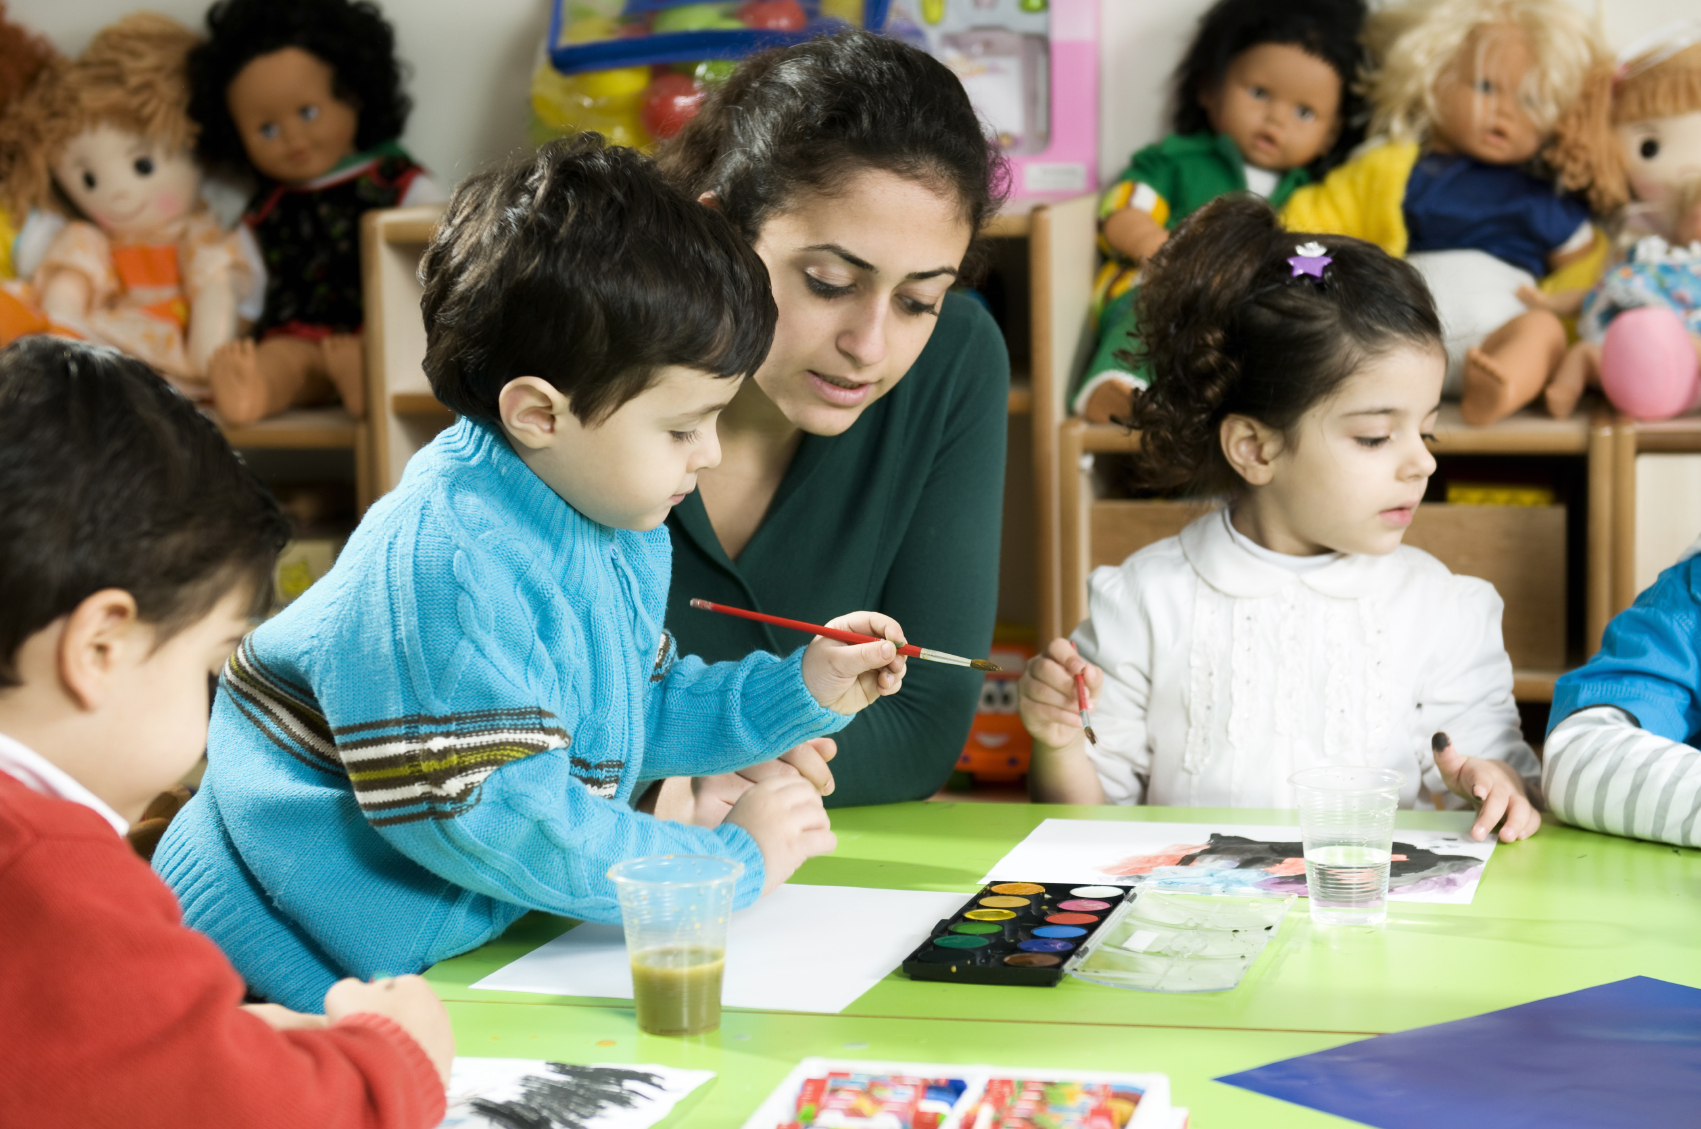 Parents weigh child-care options as federal parties put policies in election window